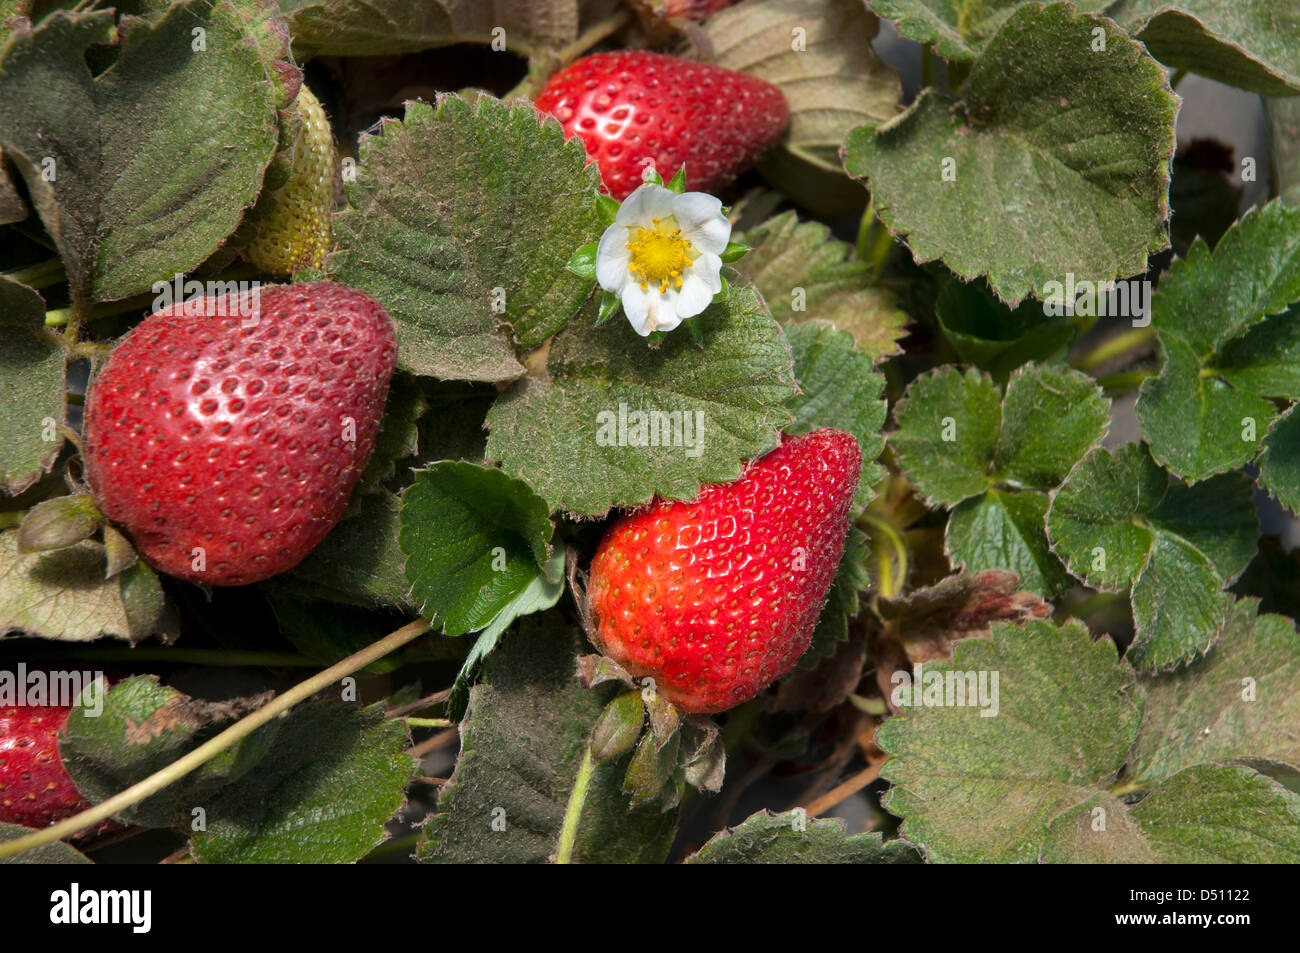 Strawberry Growing inside a greenhouse - Stock Image